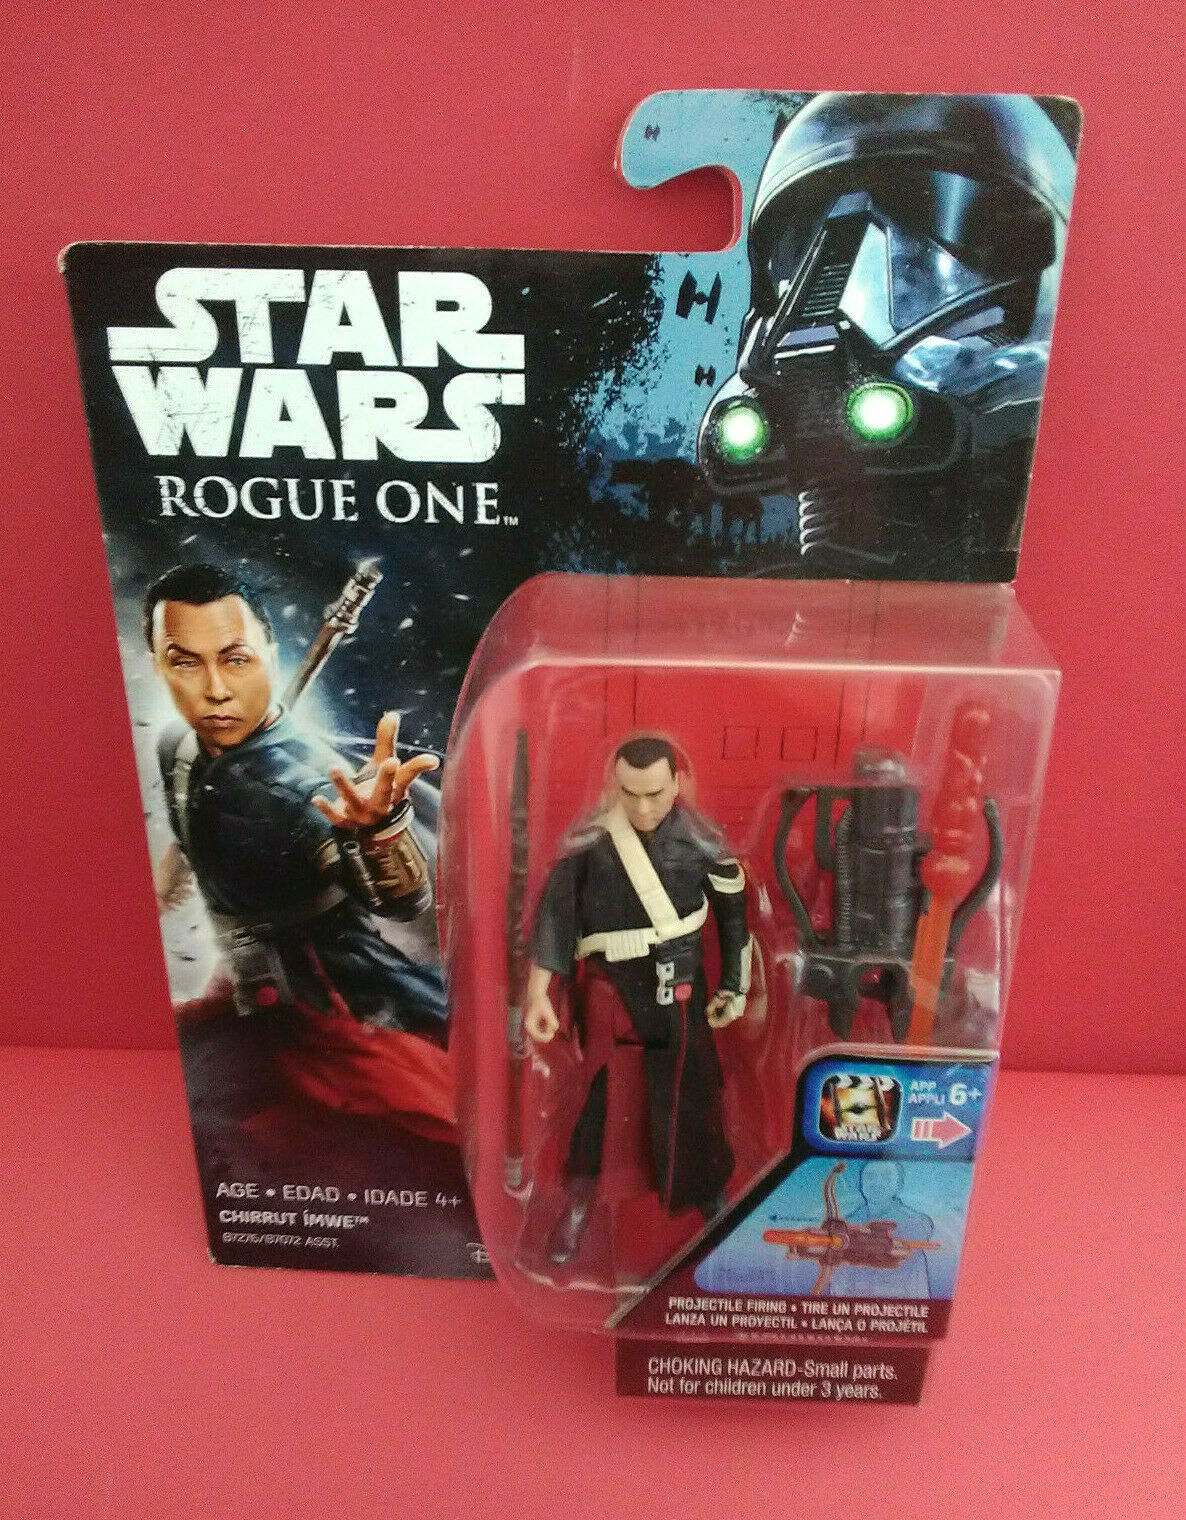 StarWars collection : STAR WARS - CHIRRUT IMWE - ROGUE ONE - 2016 - FIGURINE 10 CM - R 6667